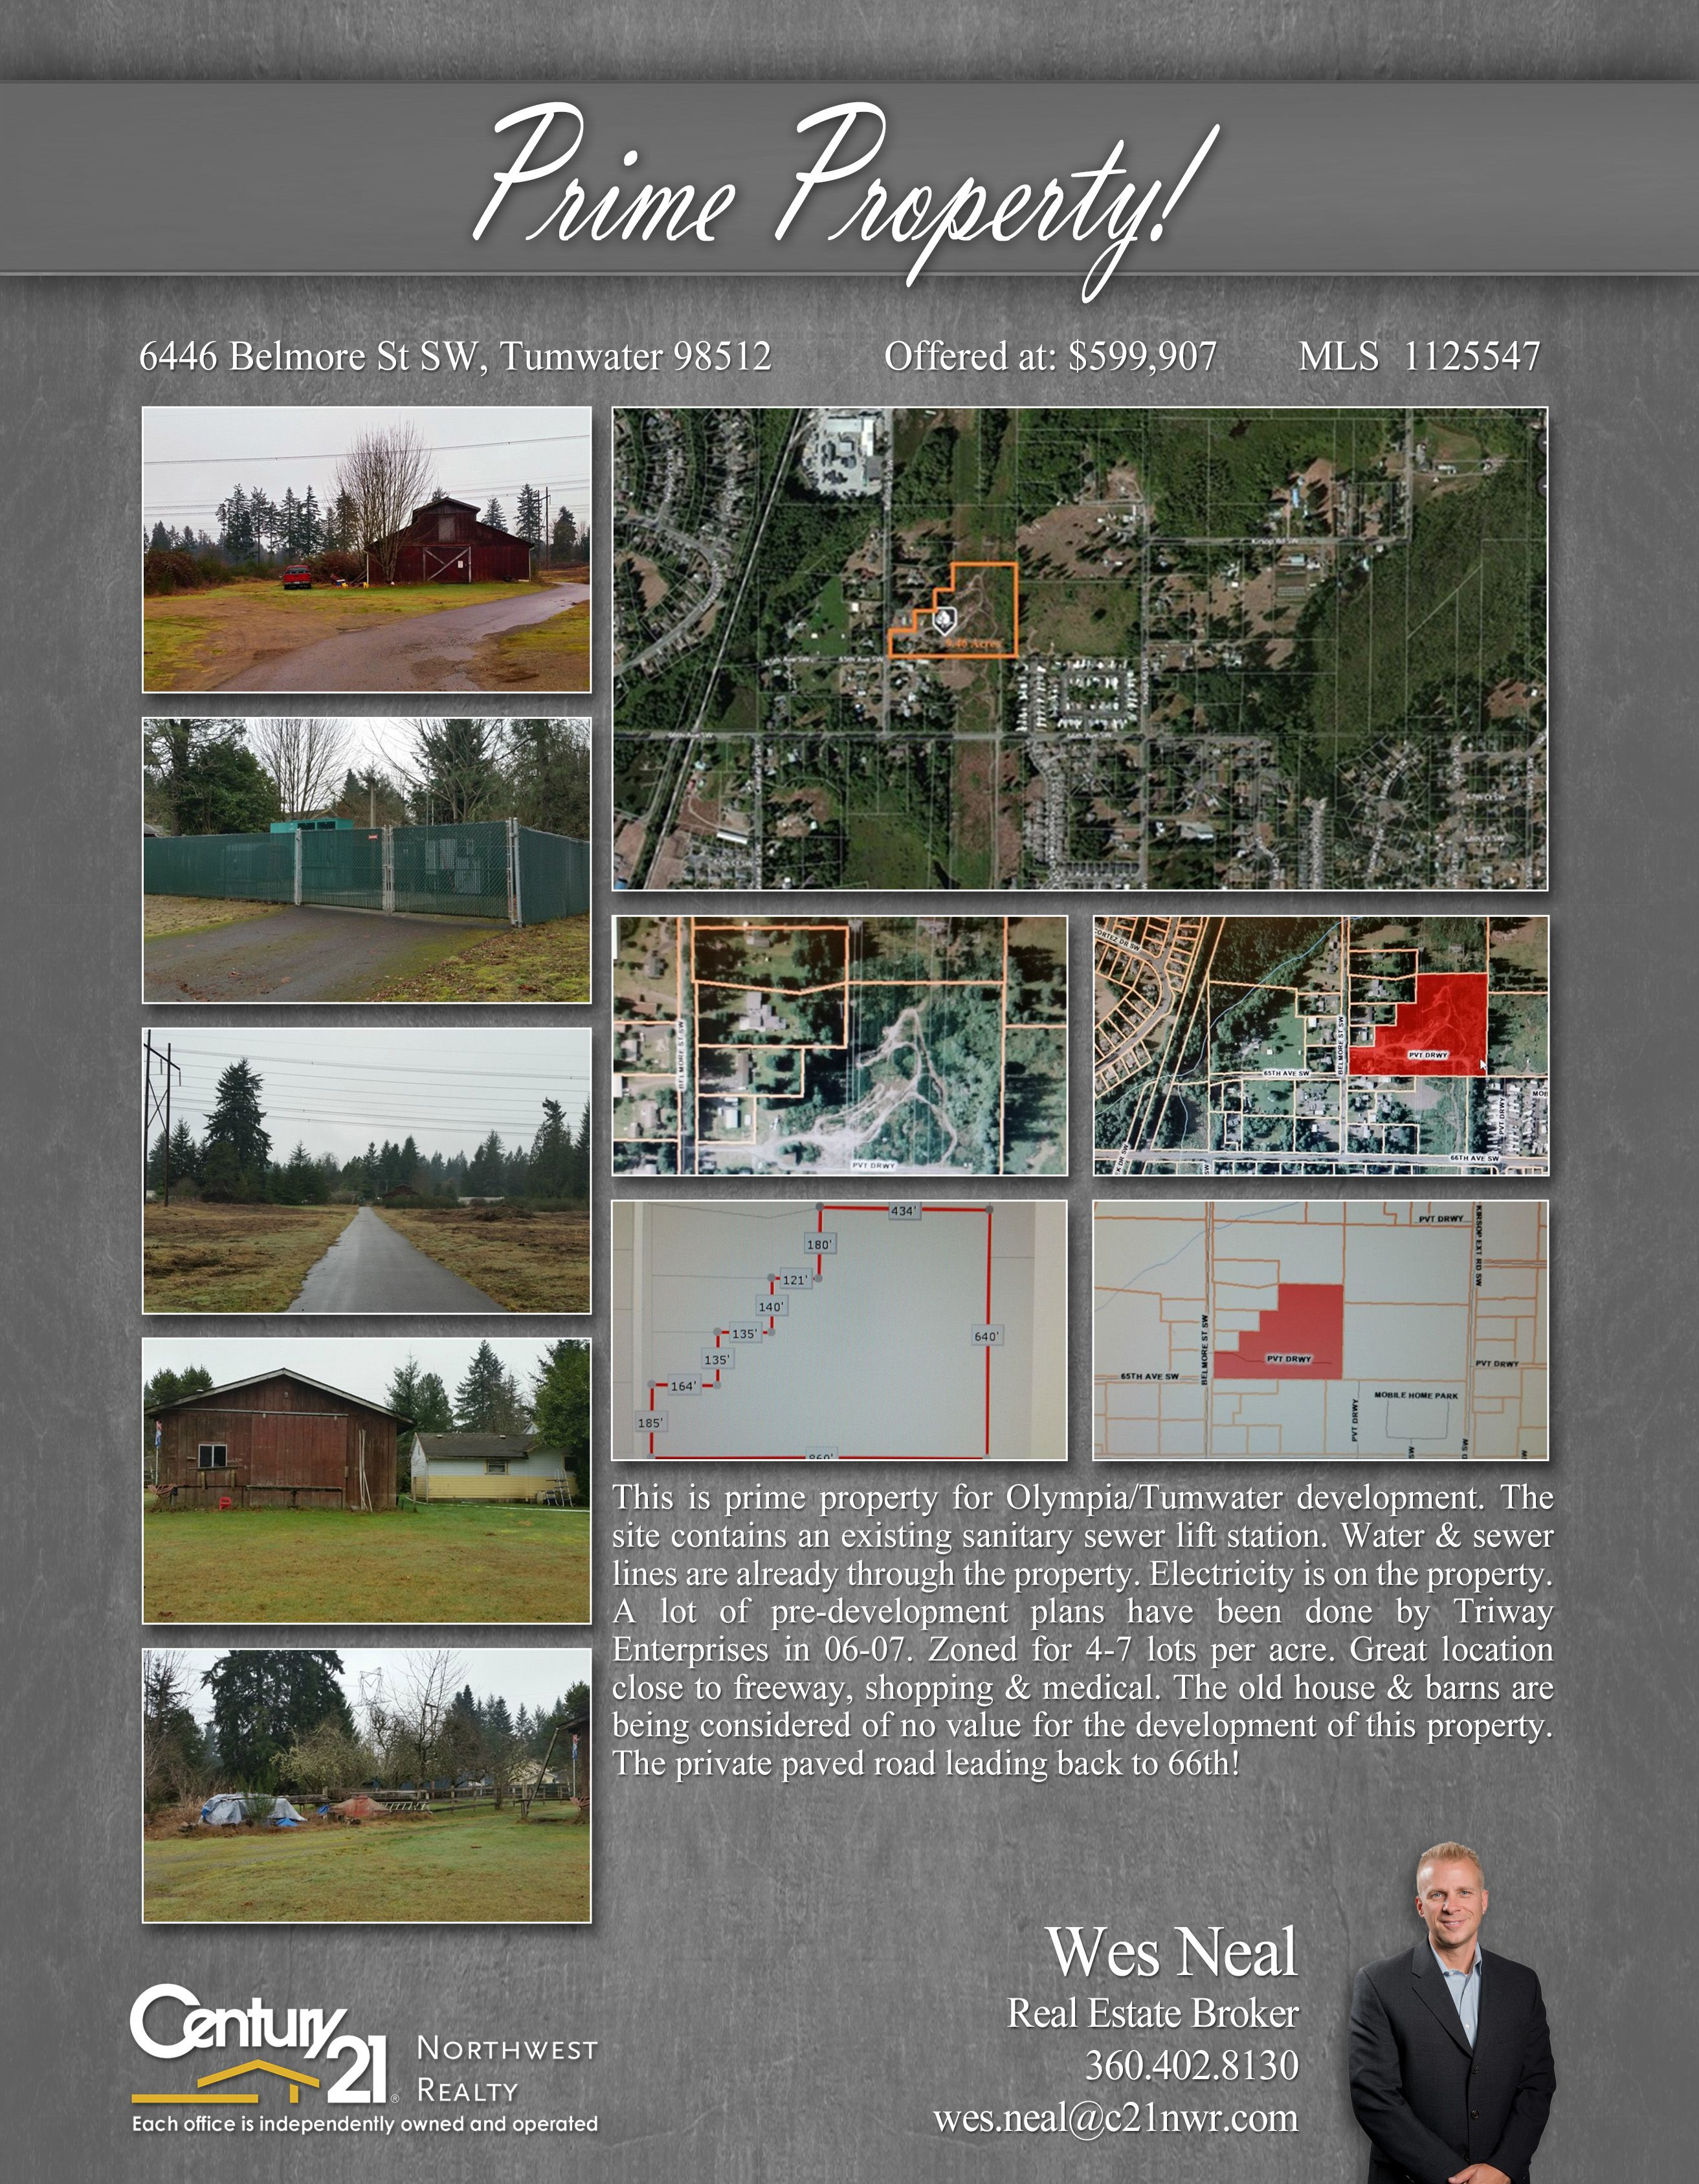 This is prime property for Olympia/Tumwater development. The site contains an existing sanitary sewer lift station. Water & sewer lines are already through the property.   Electricity is on the property. A lot of pre-development plans have been done by Triway Enterprises in 06-07. Zoned for 4-7 lots per acre. Great location close to freeway, shopping & medical.   The old house & barns are being considered of no value for the development of this property. The private paved road leading back…